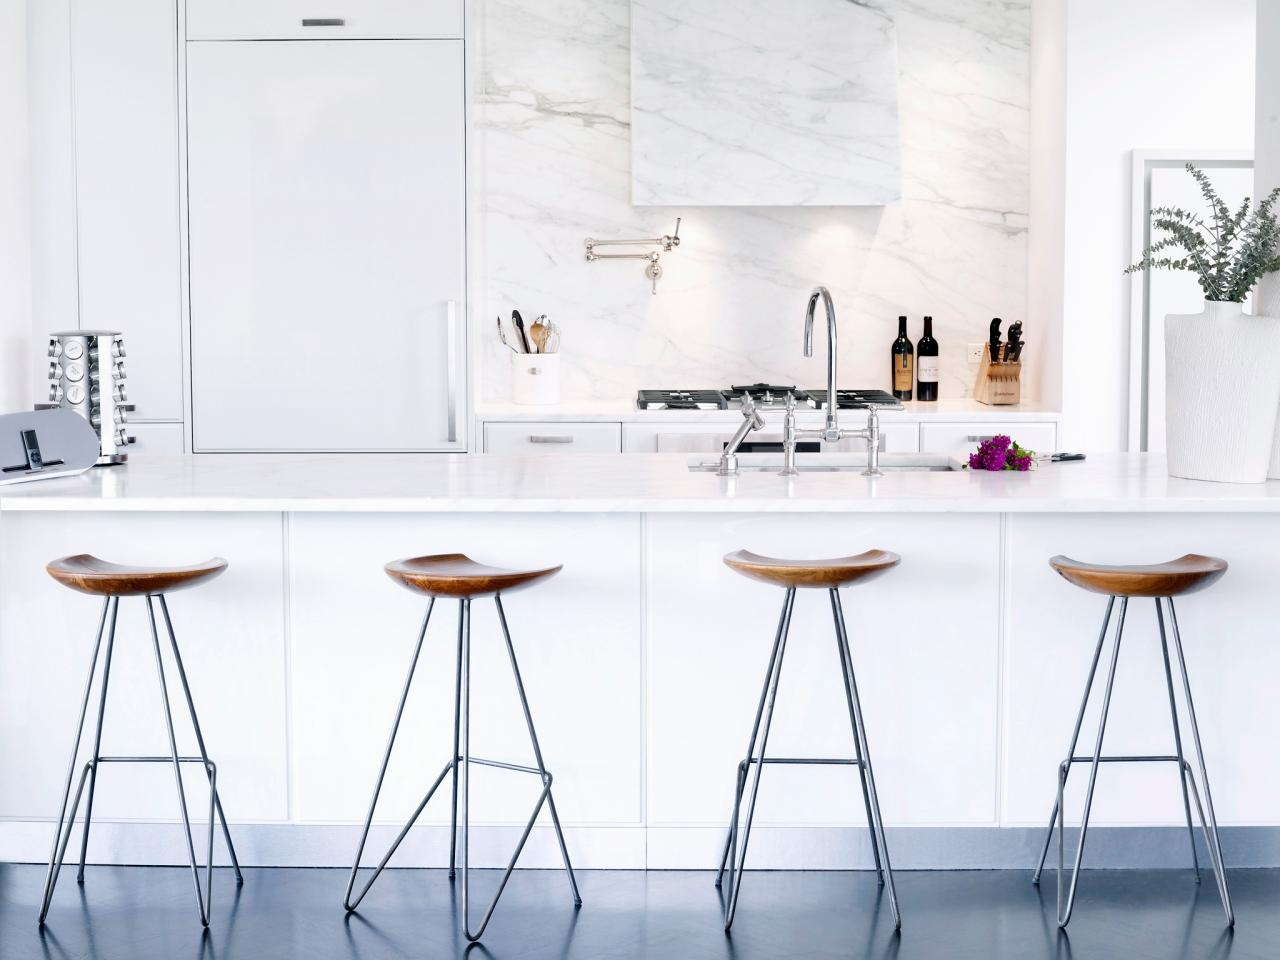 Kitchen island with an innovative sink